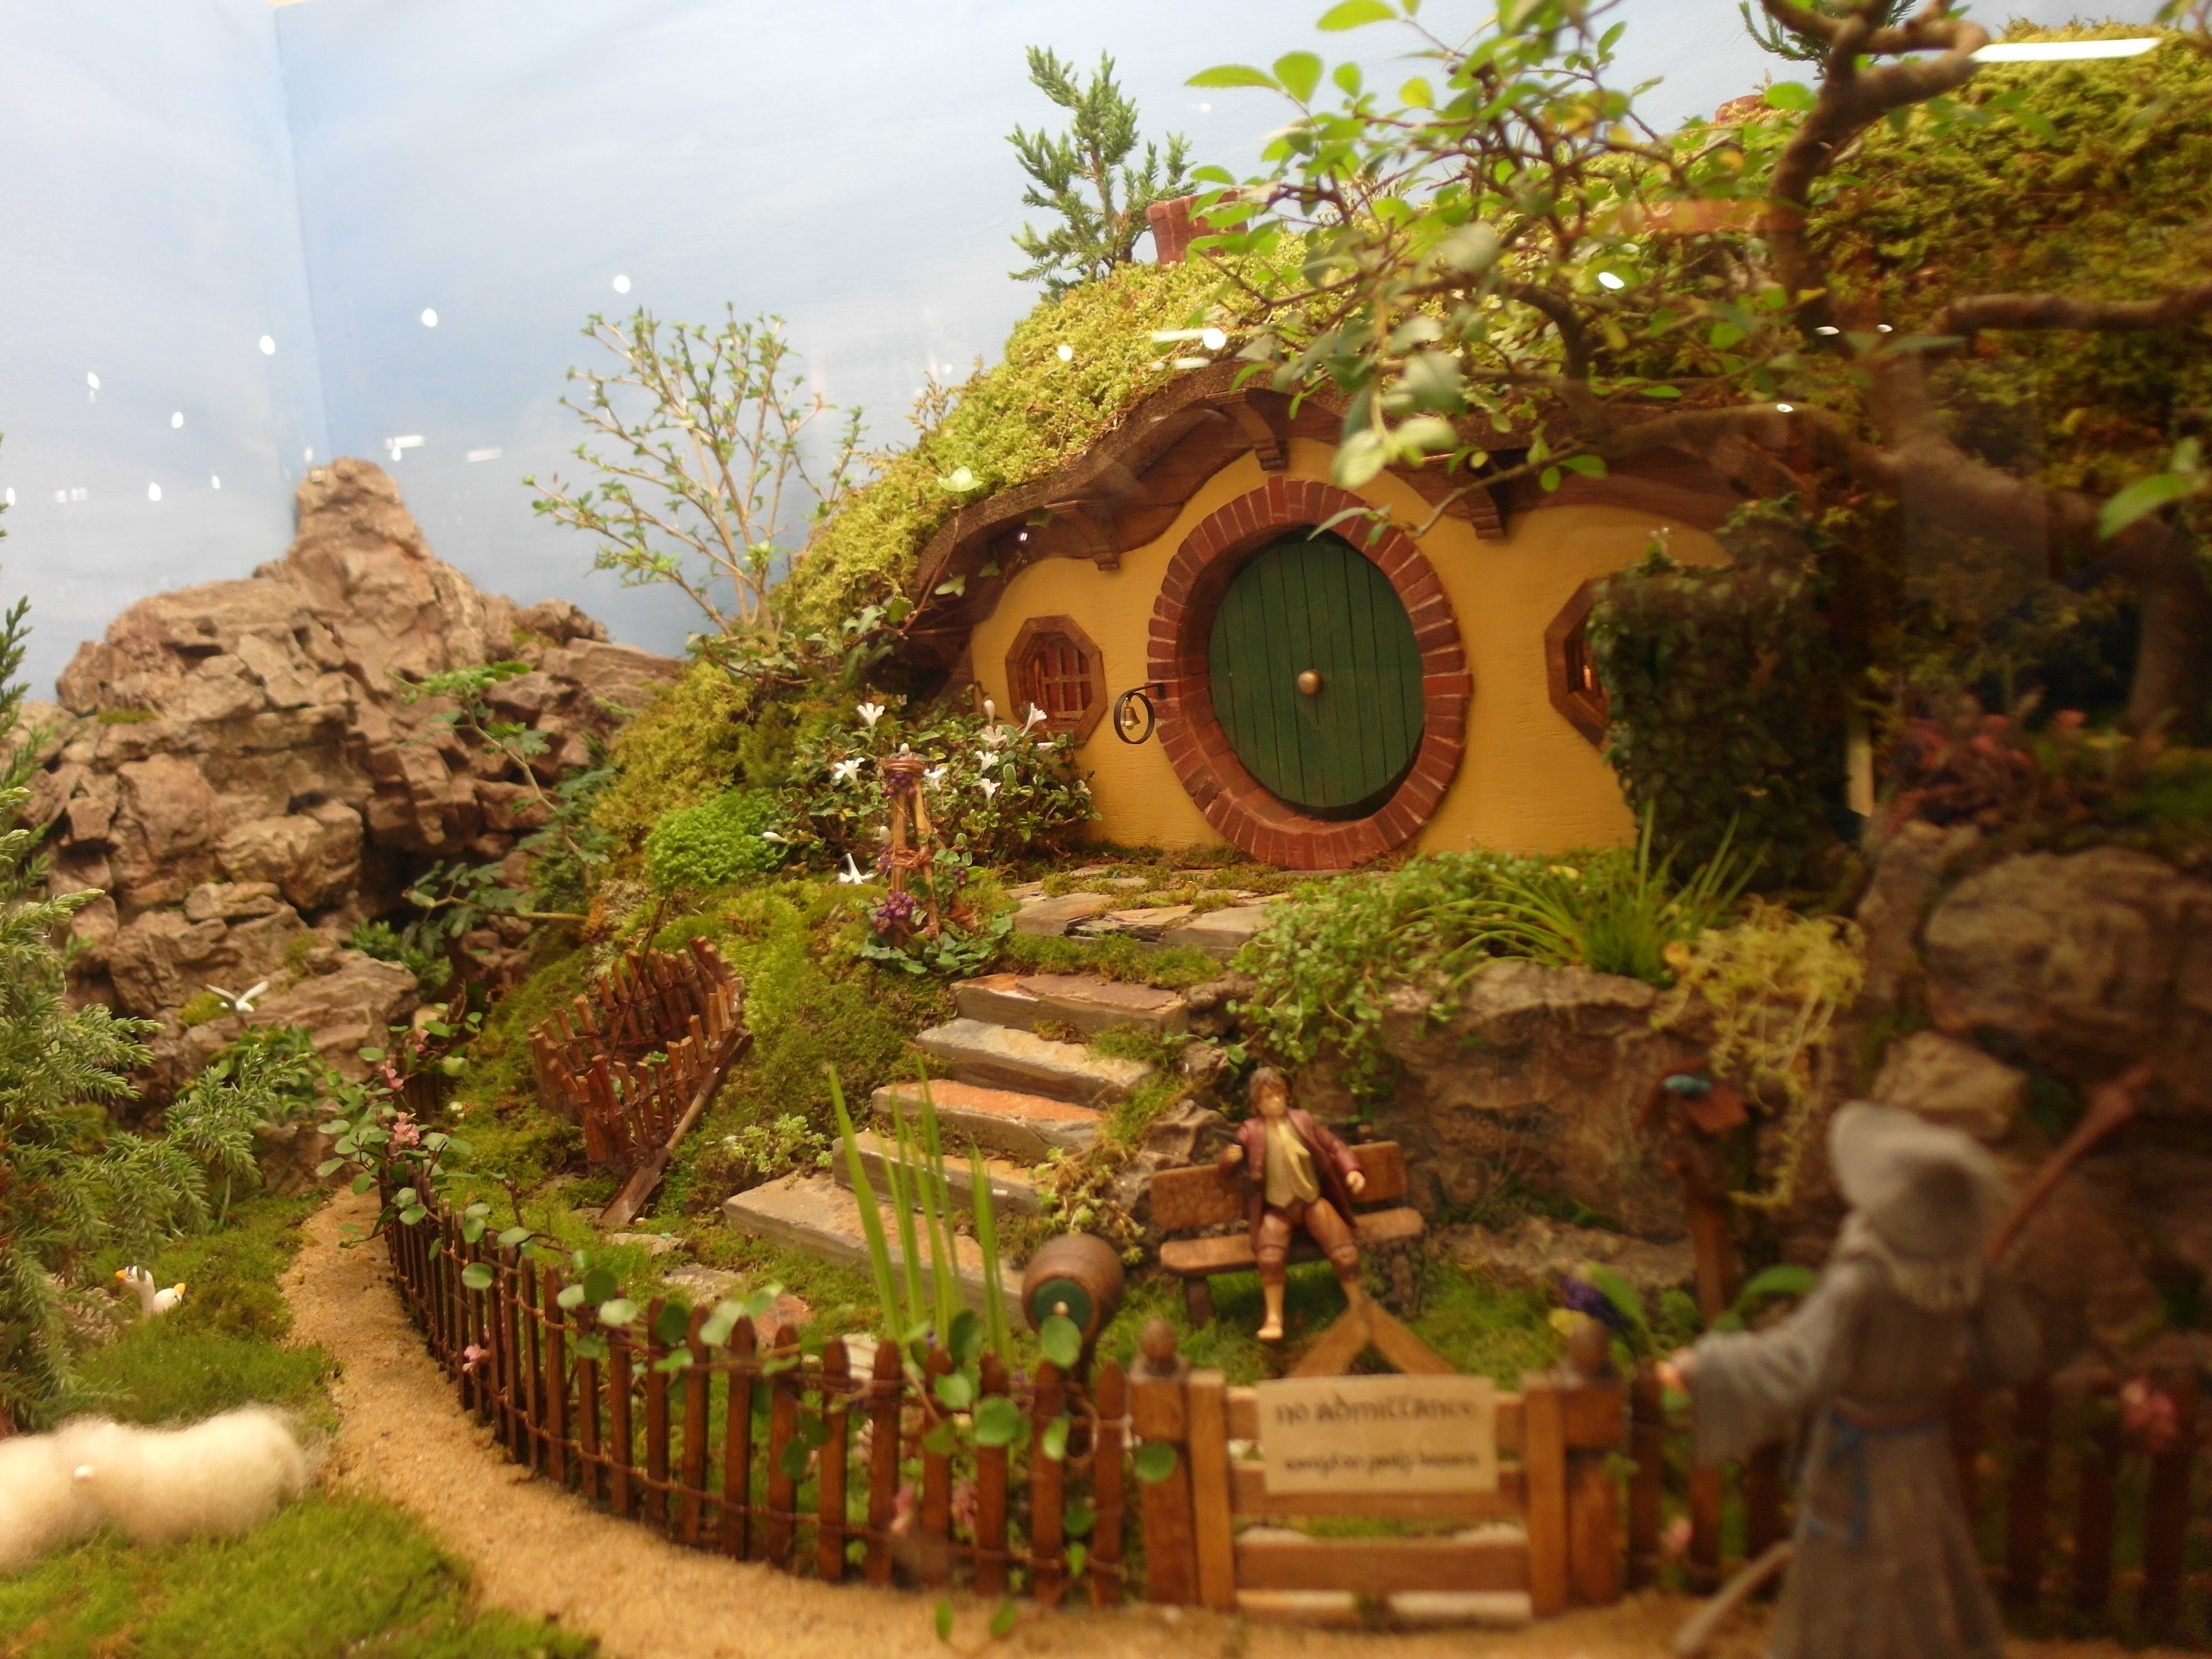 Boston Flower Show | Miniature Gardens: Hobbit Hole | Pinterest ...